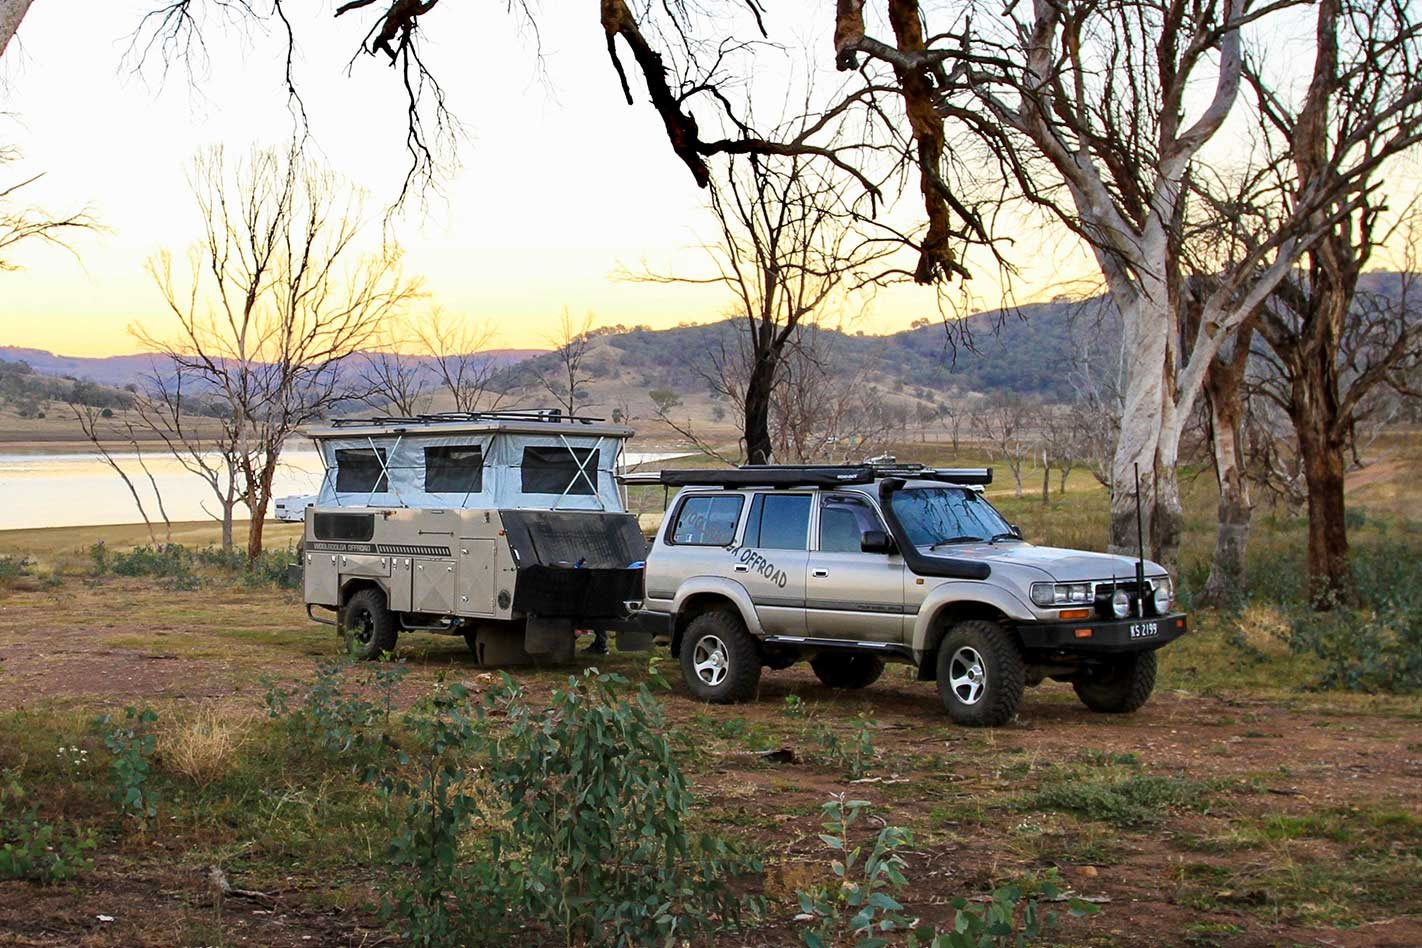 Nundle, NSW: 4x4 travel guide